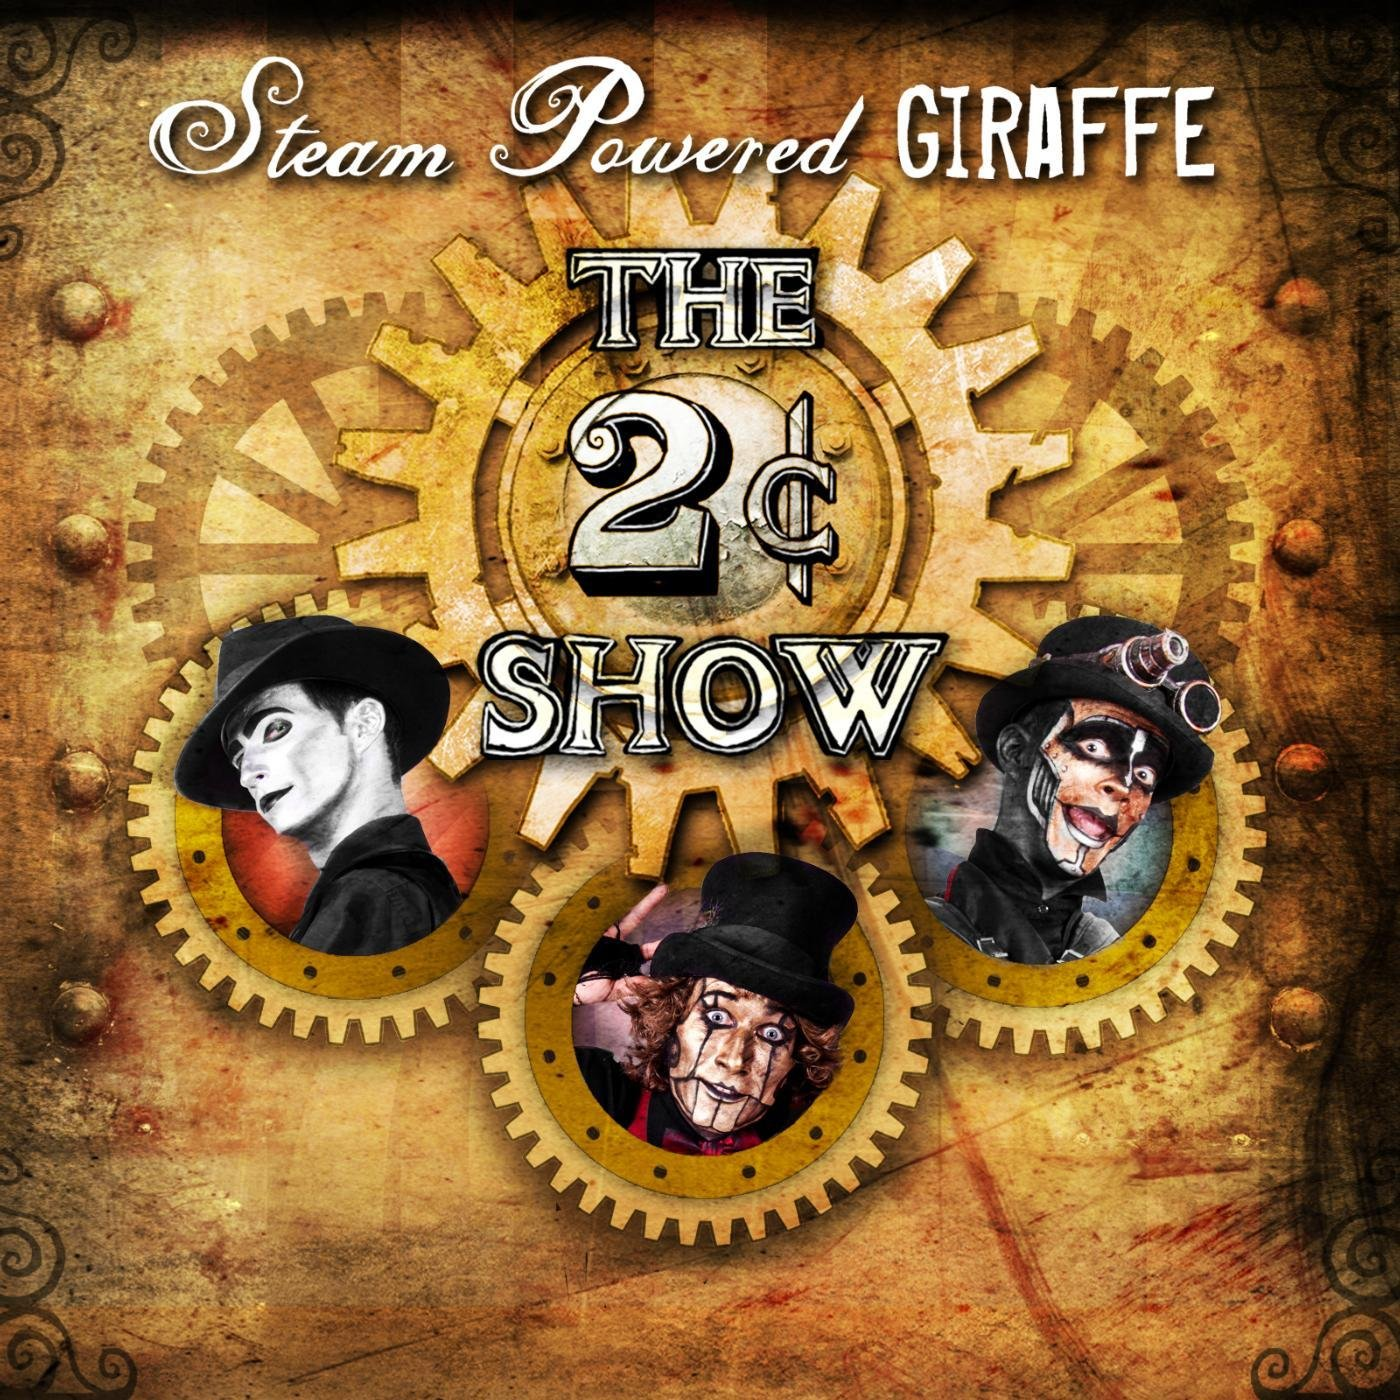 2%C2%A2 Show Steam Powered Giraffe